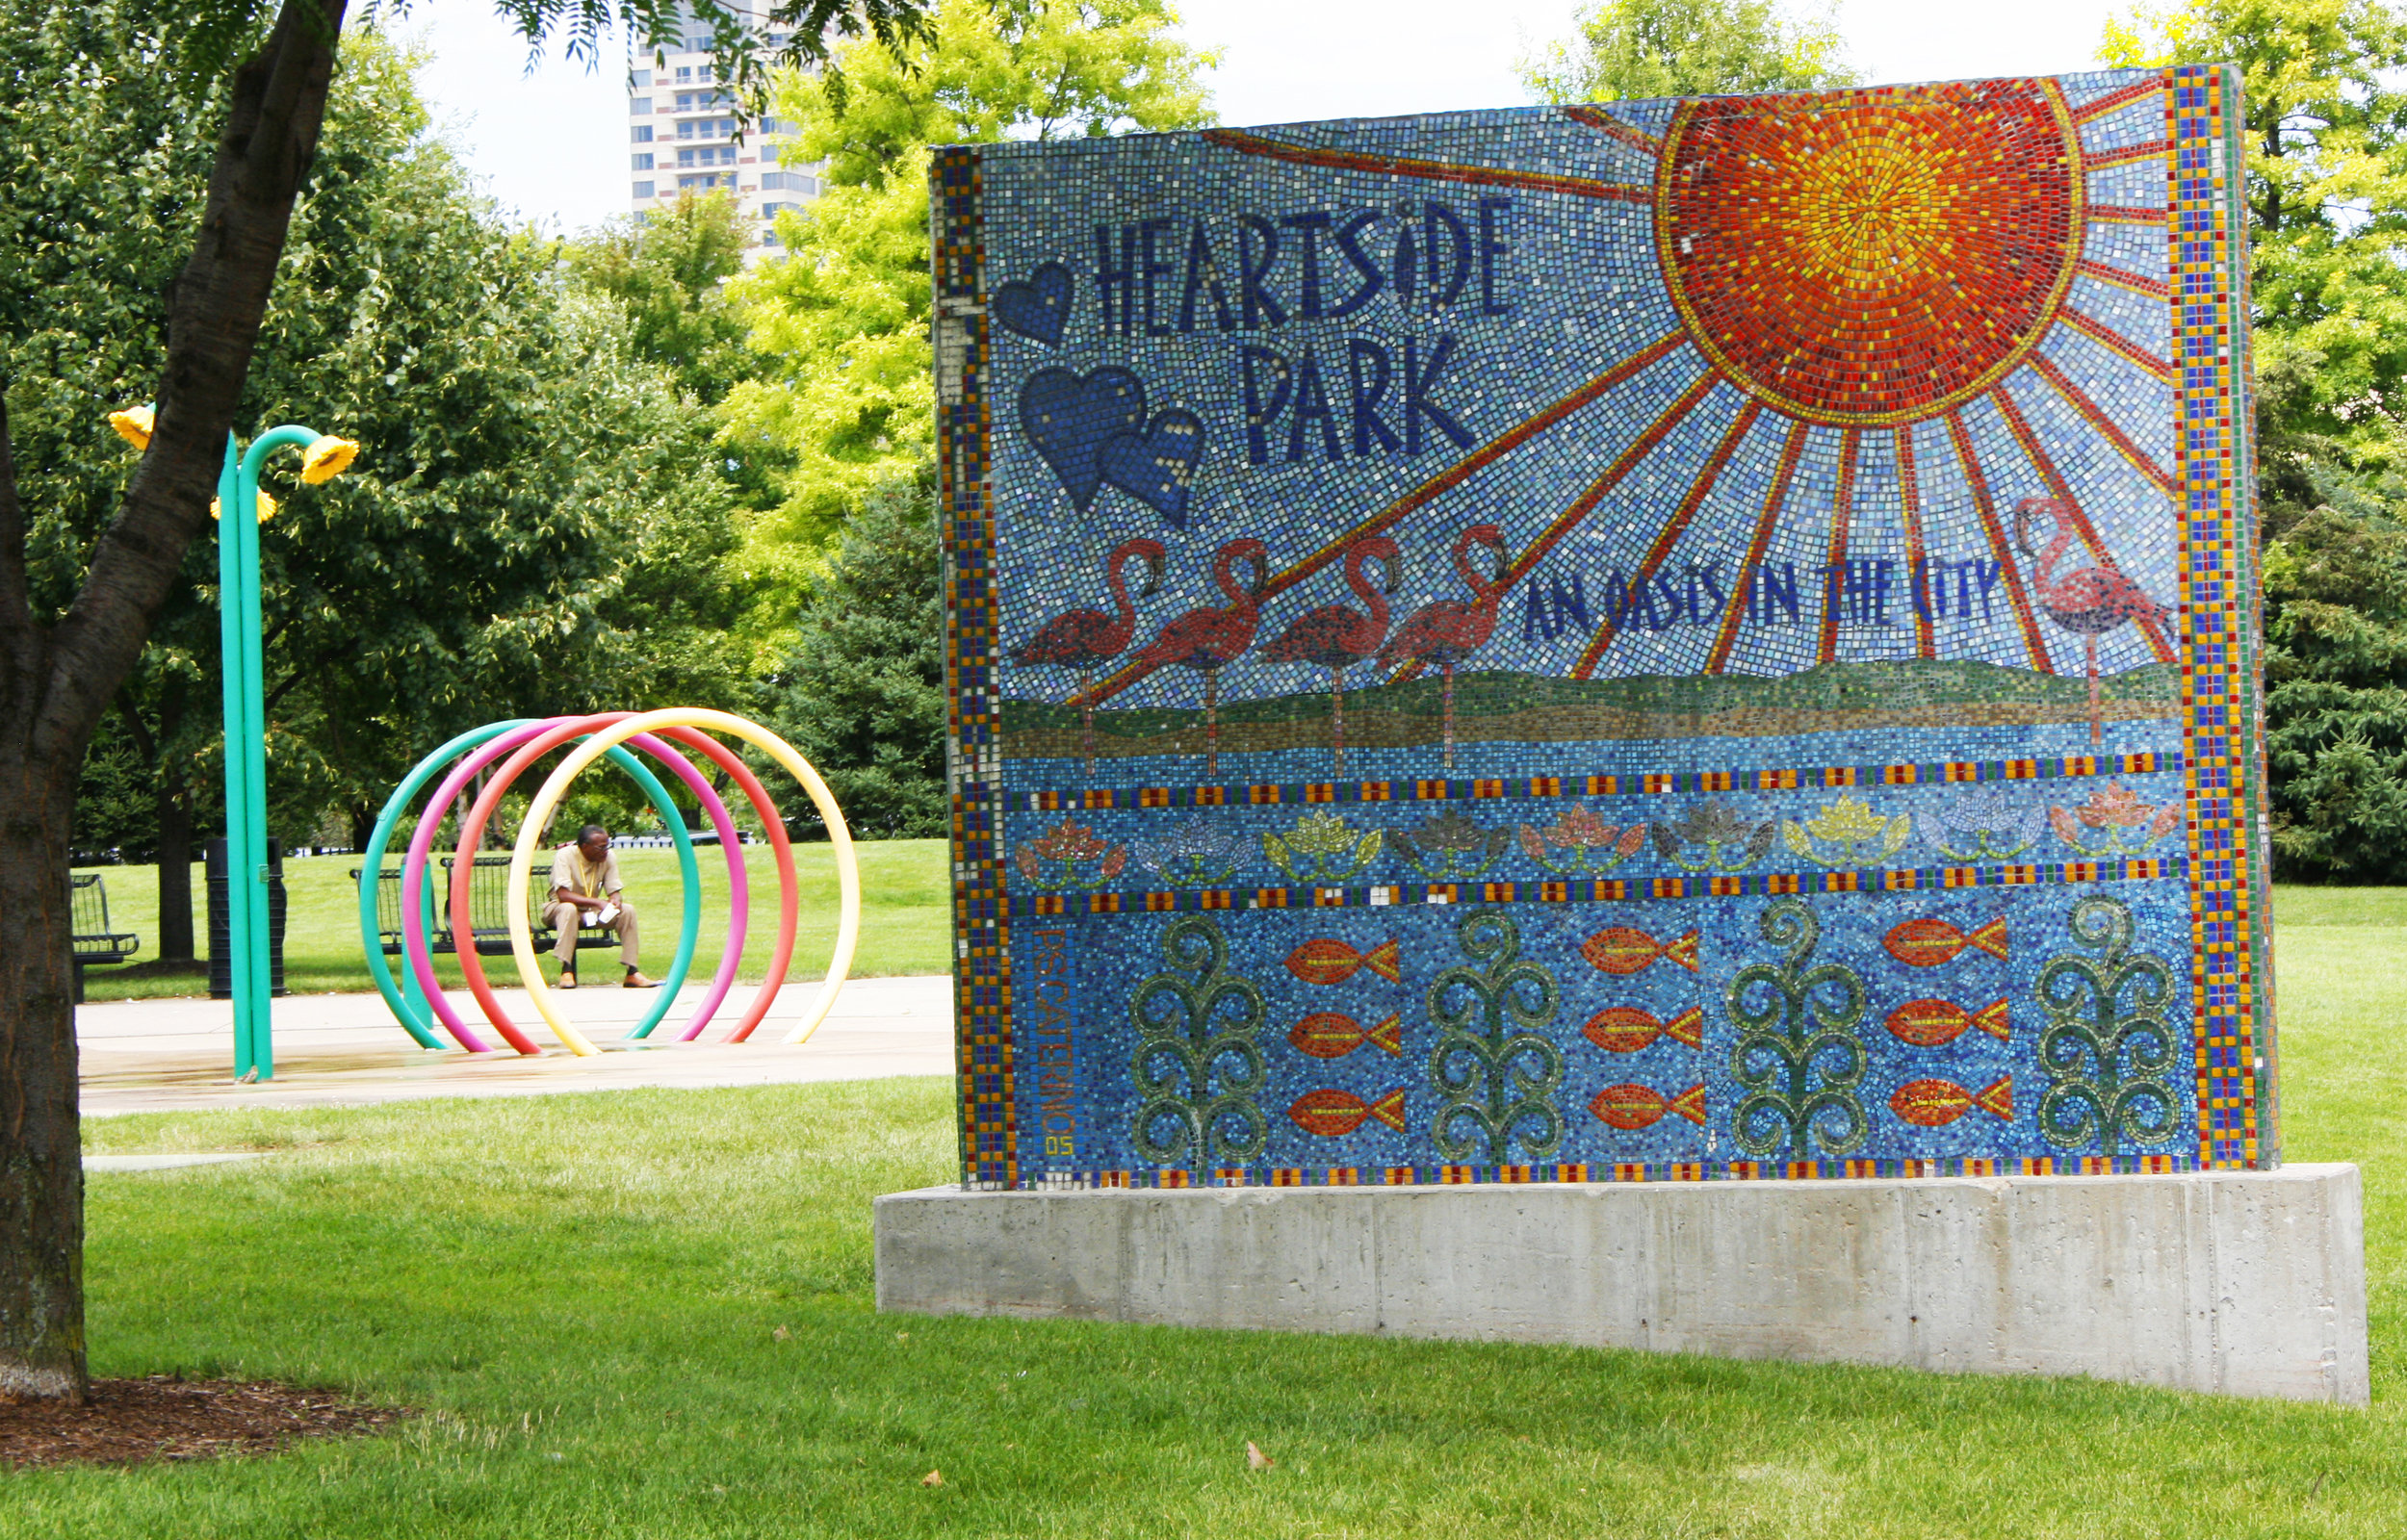 heartside-park.jpg